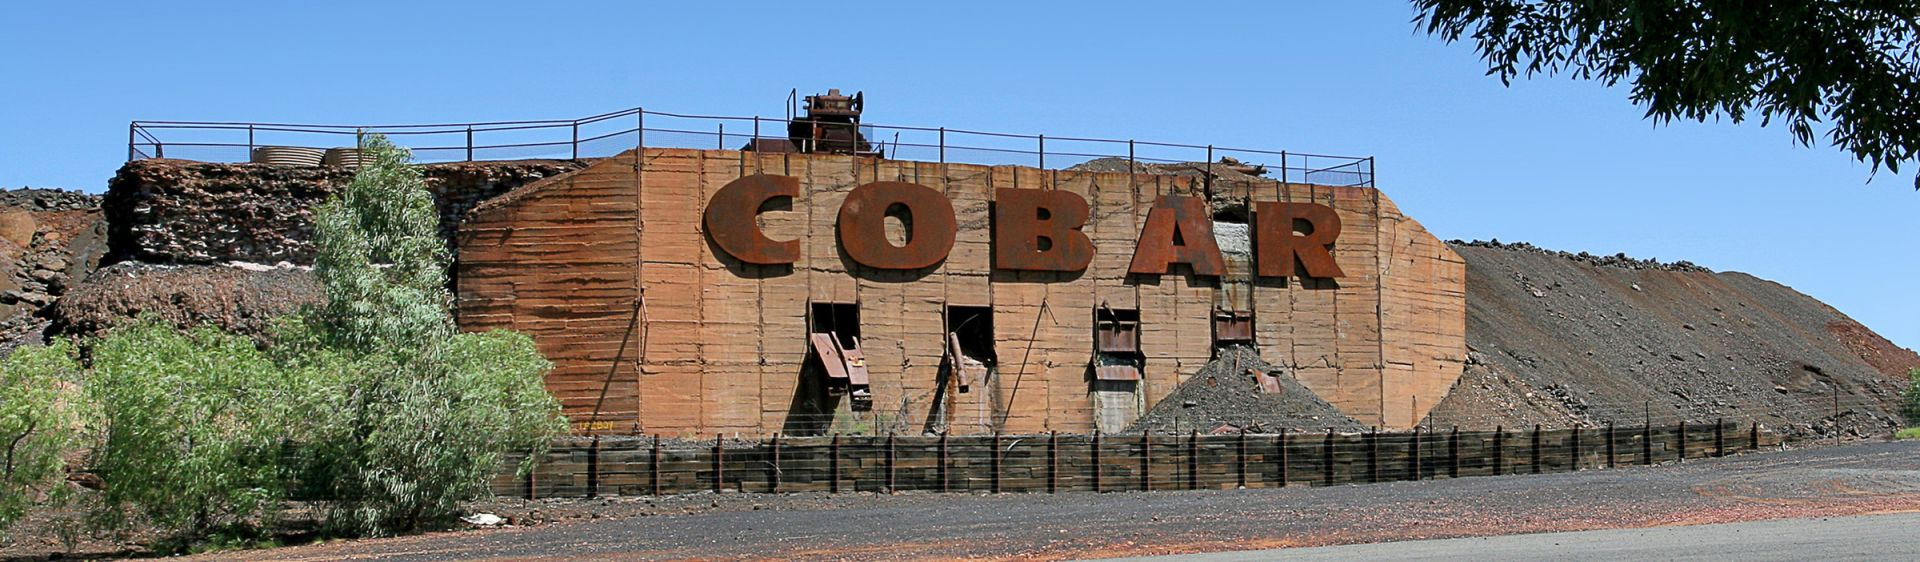 Cobar Sign - Outback NSW